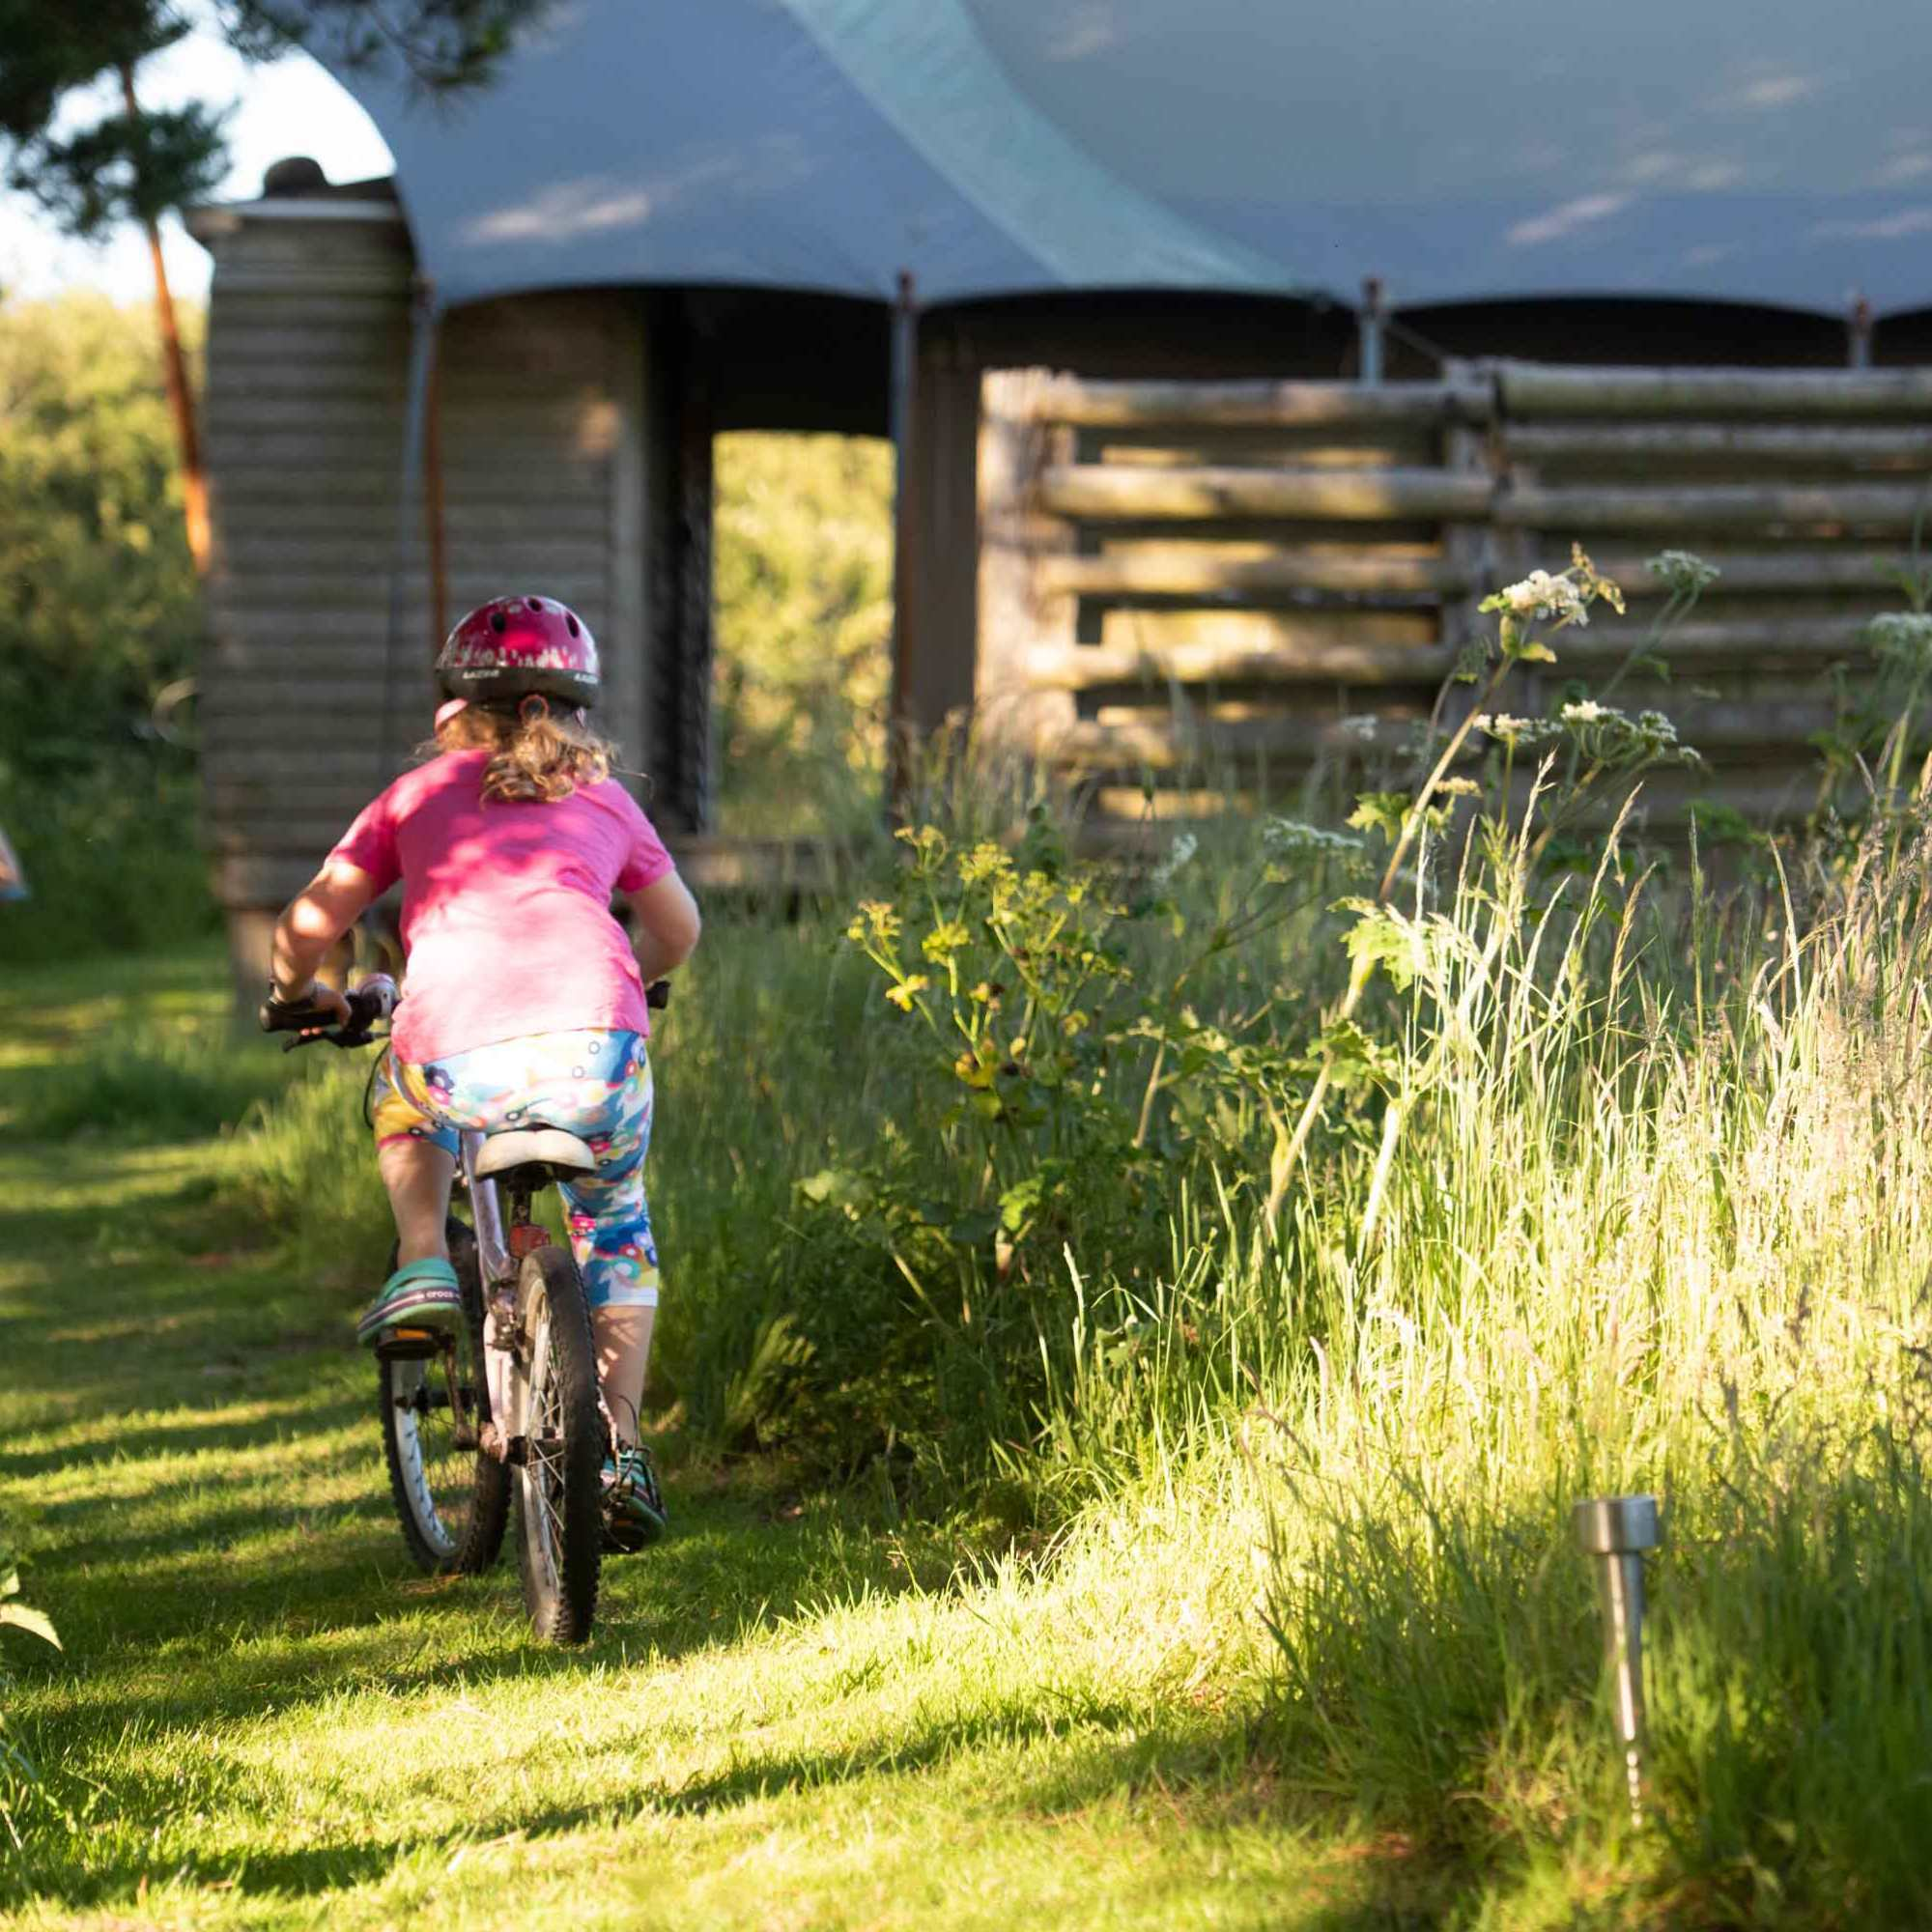 kids riding their bikes on the mown path towards woody safari tent